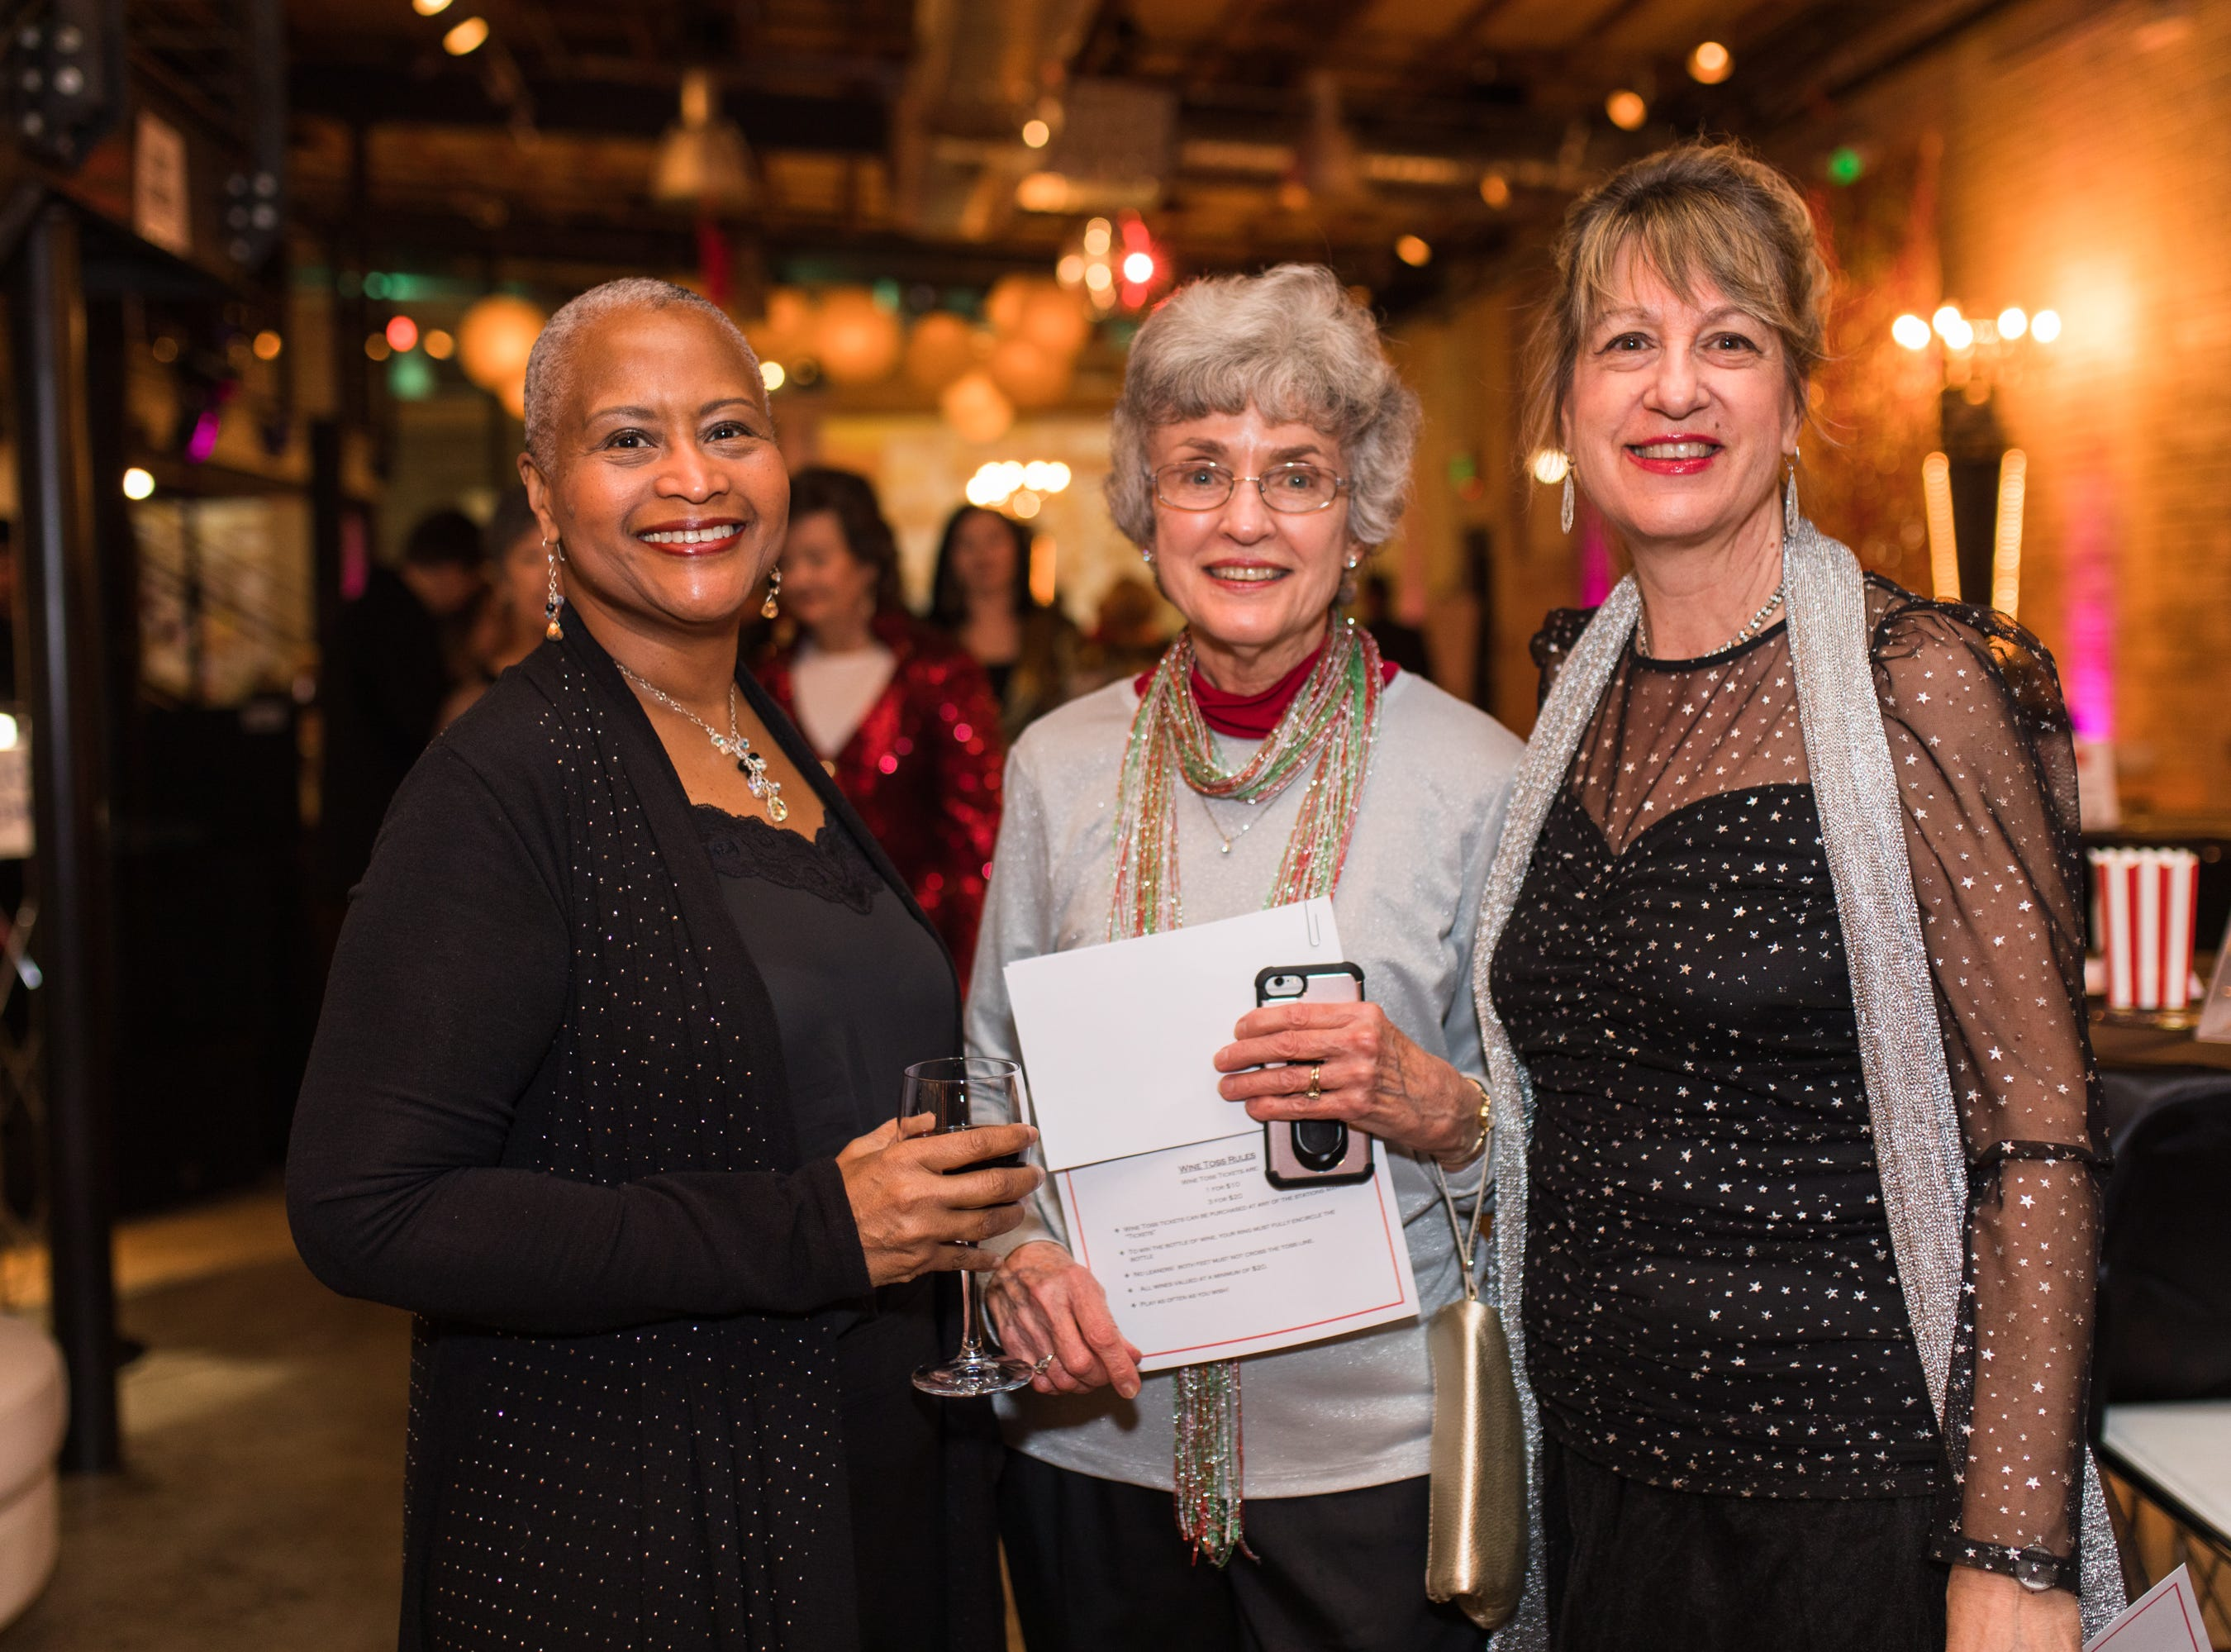 The 2019 Carnivale was held at beautiful Downtown venue, Zen to benefit the Greenville Symphony Orchestra. Guests enjoyed an evening of fun featuring specialty drinks, heavy hors d' oeuvres, amazing raffle items, dancing and so much more! The mission of the Greenville Symphony is to enrich lives, inspire minds and encourage community support through volunteering and fundraising.